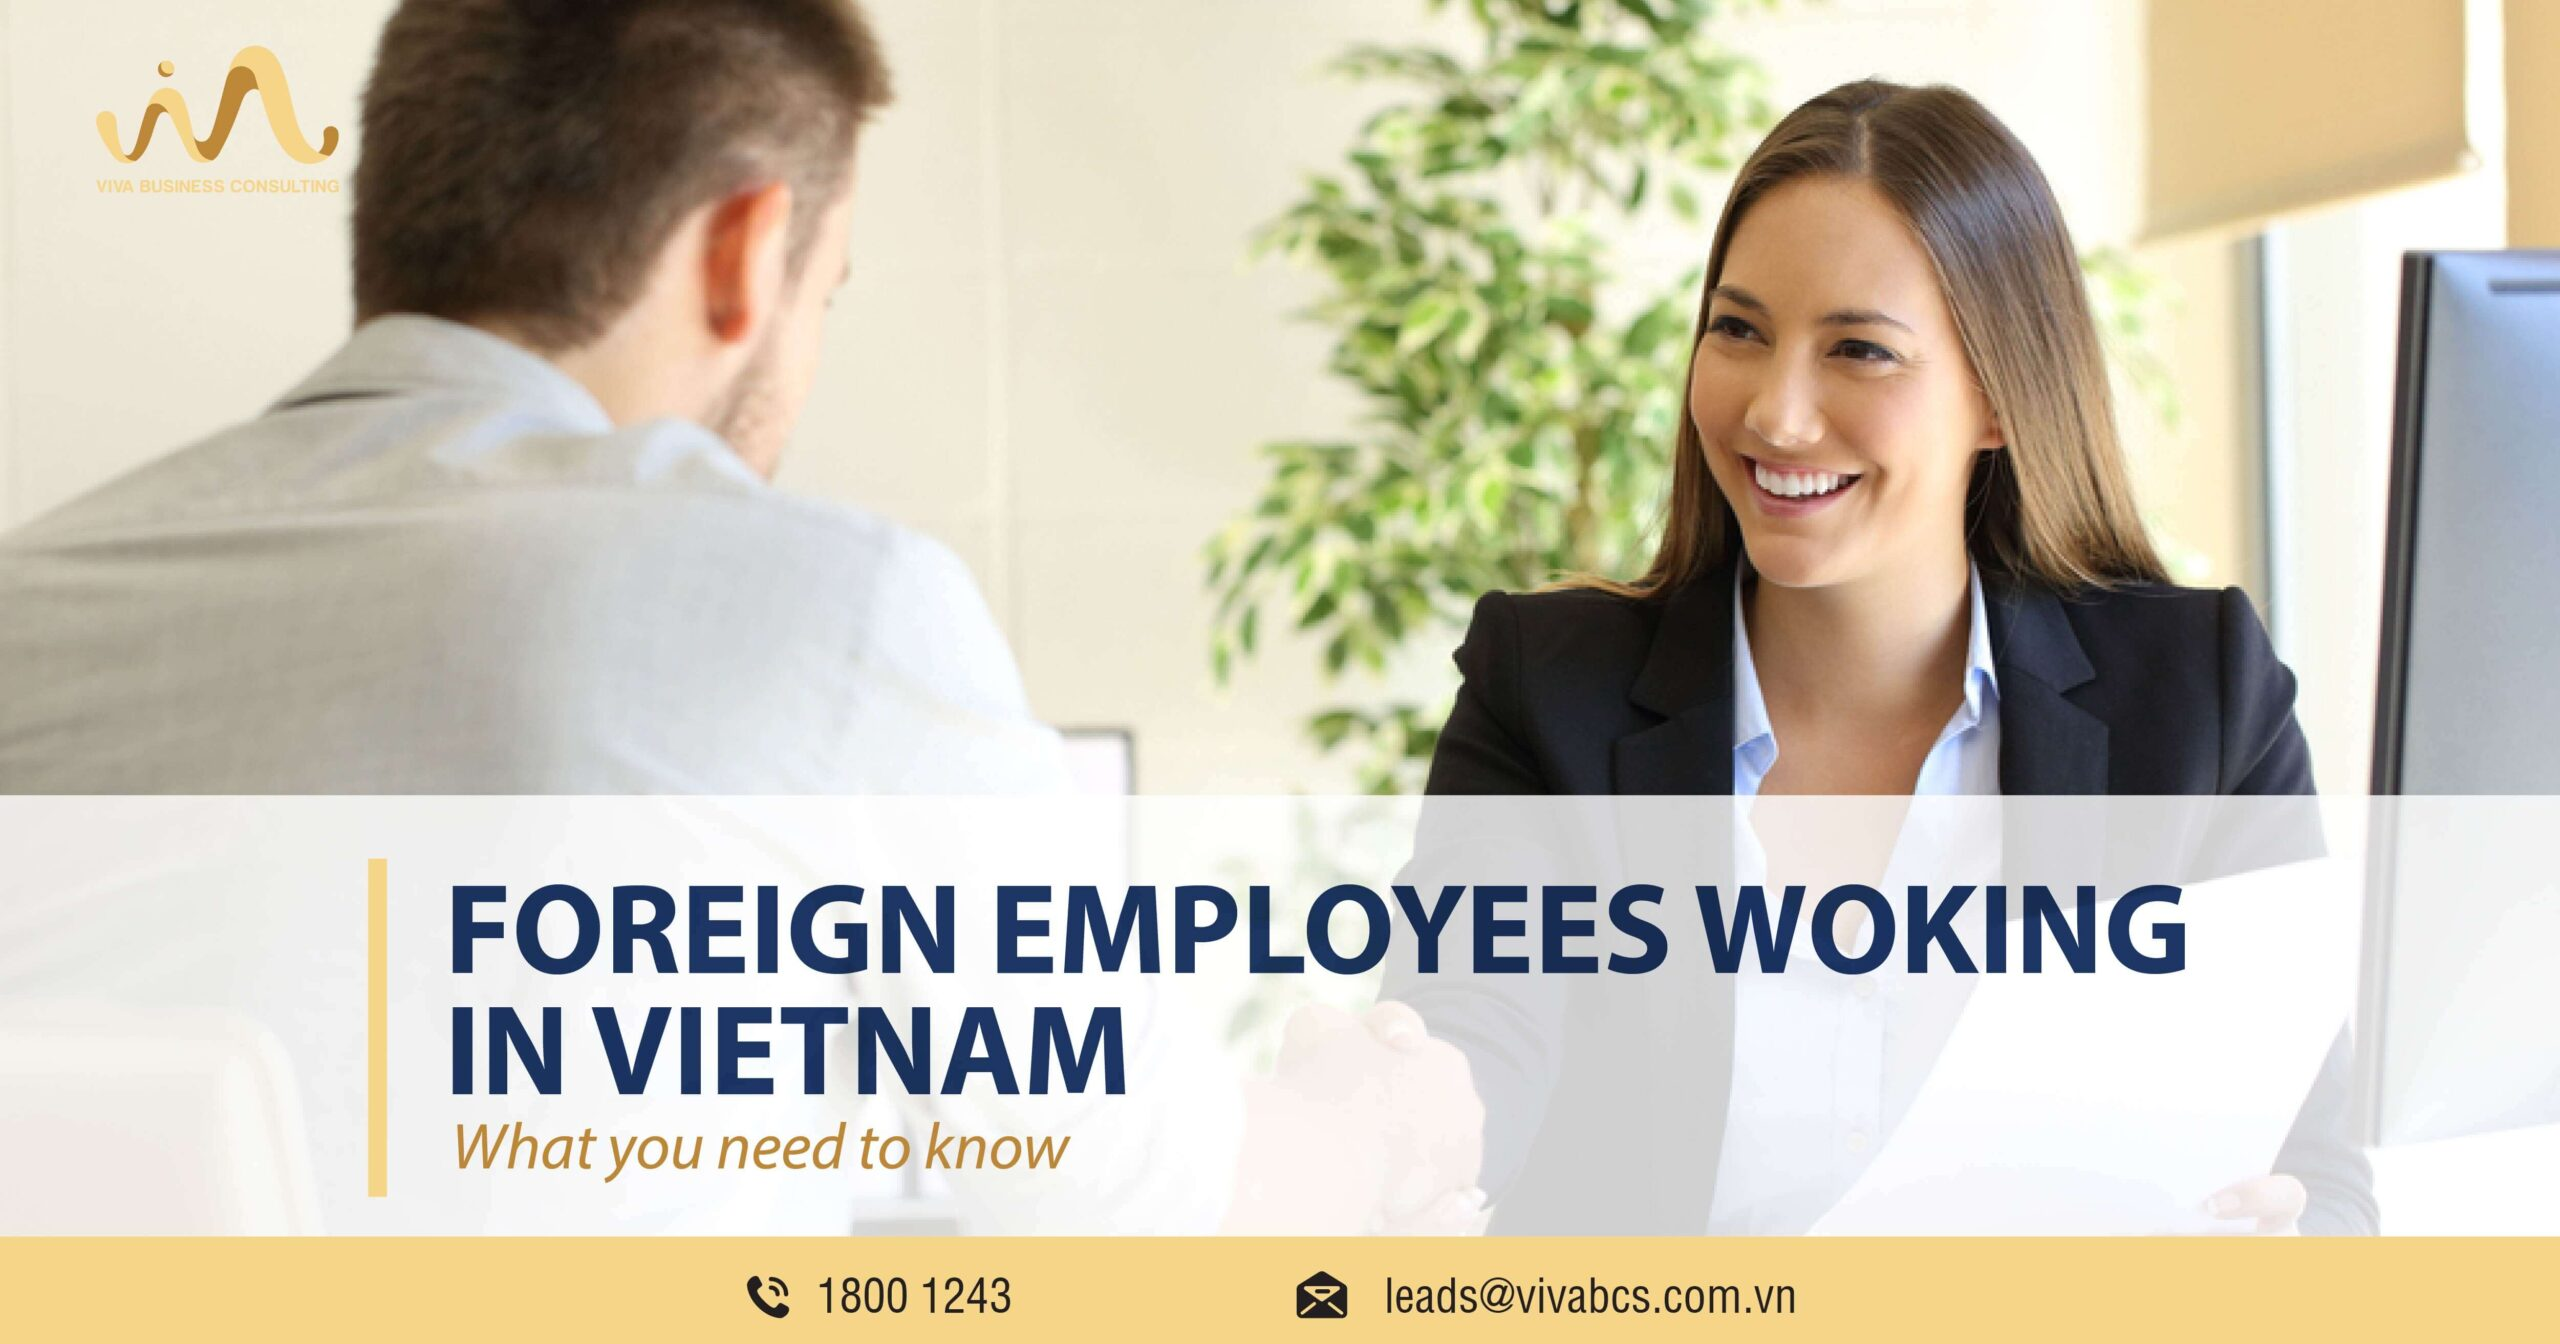 Foreign employees working in Vietnam